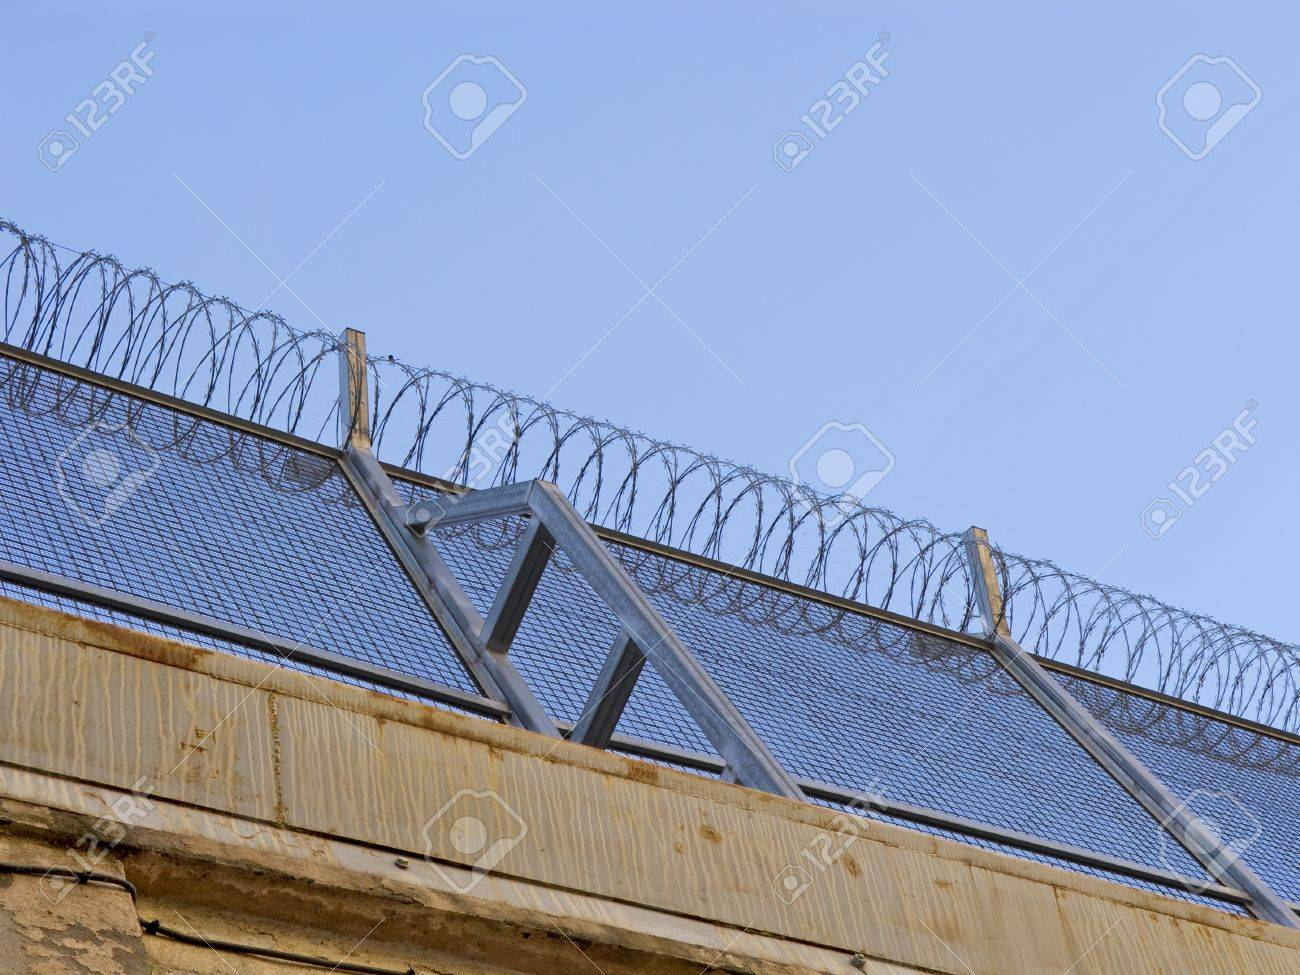 Barb wire into a prison wall, detail Stock Photo - 13379733